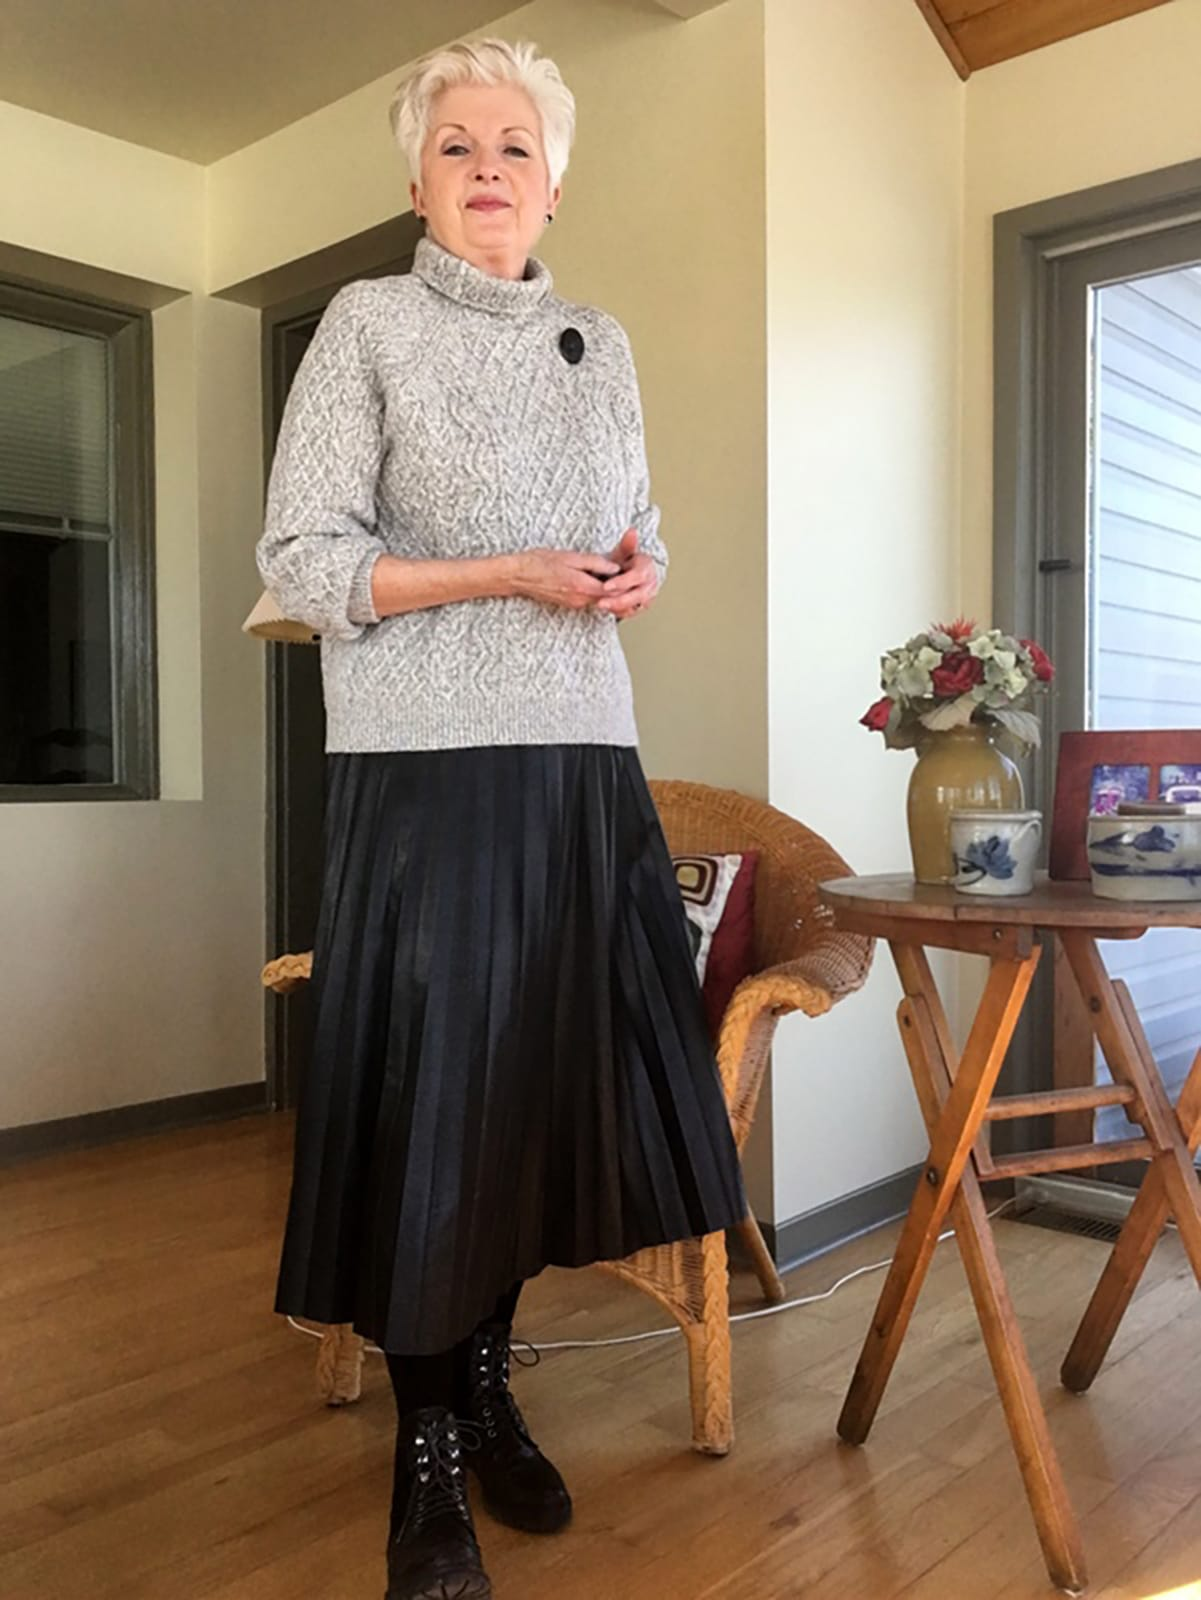 Sue Burpee in H&M & Combat boots on Cindy Hattersley's blog